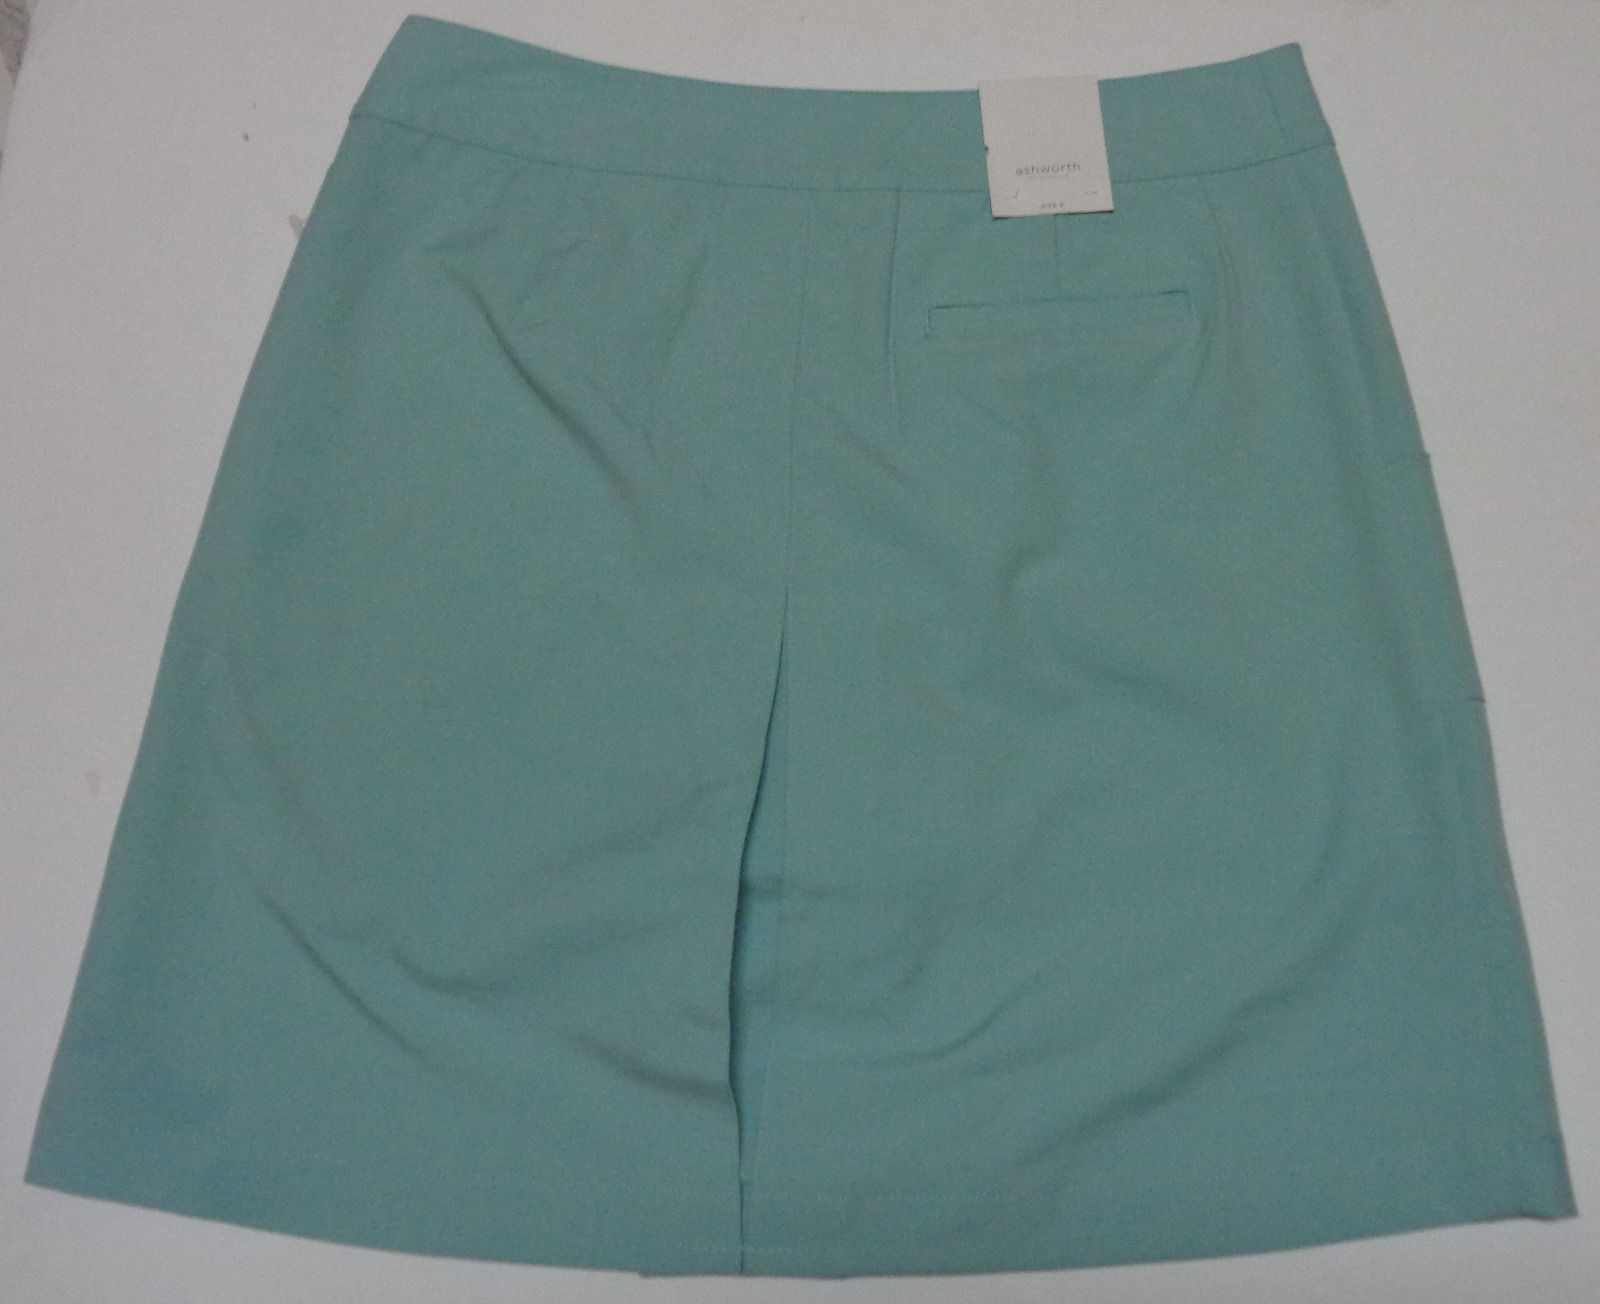 Ashworth Golf Skorts NWT Women's Performance Blue Sz 6